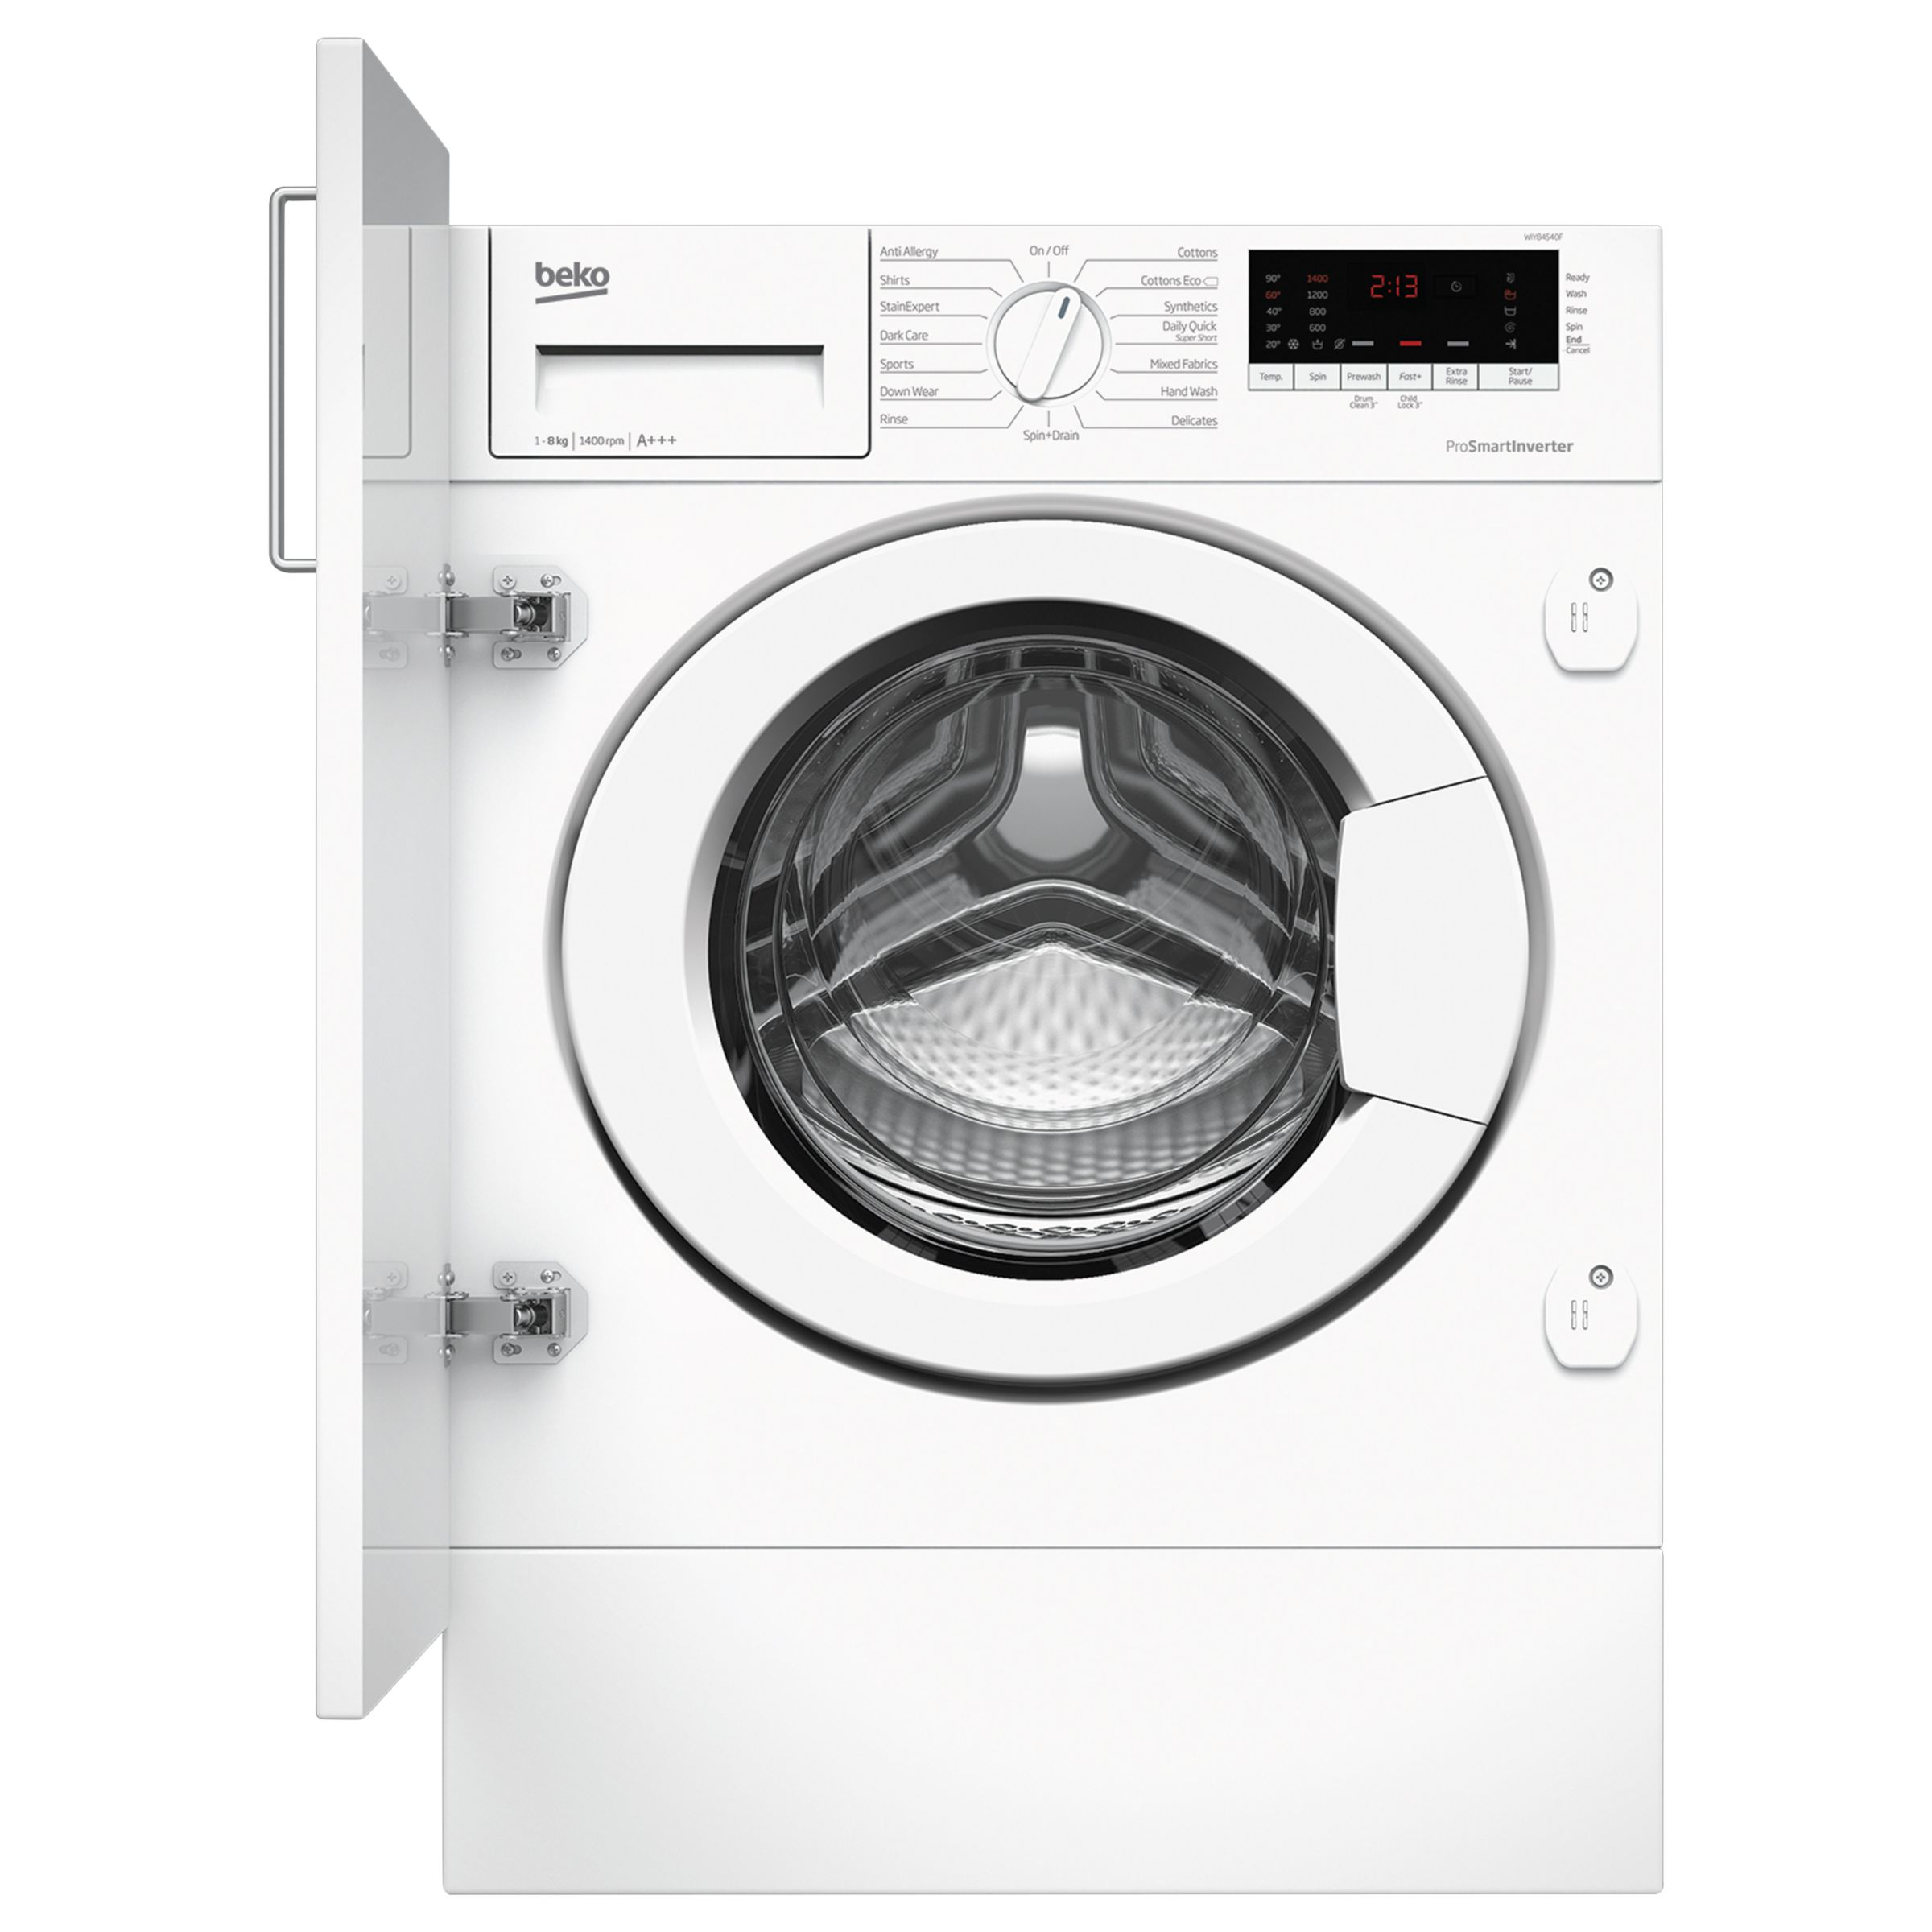 Beko Beko WIY84540F Integrated Washing Machine, 8kg Load, A+++ Energy Rating, 1400rpm Spin, White